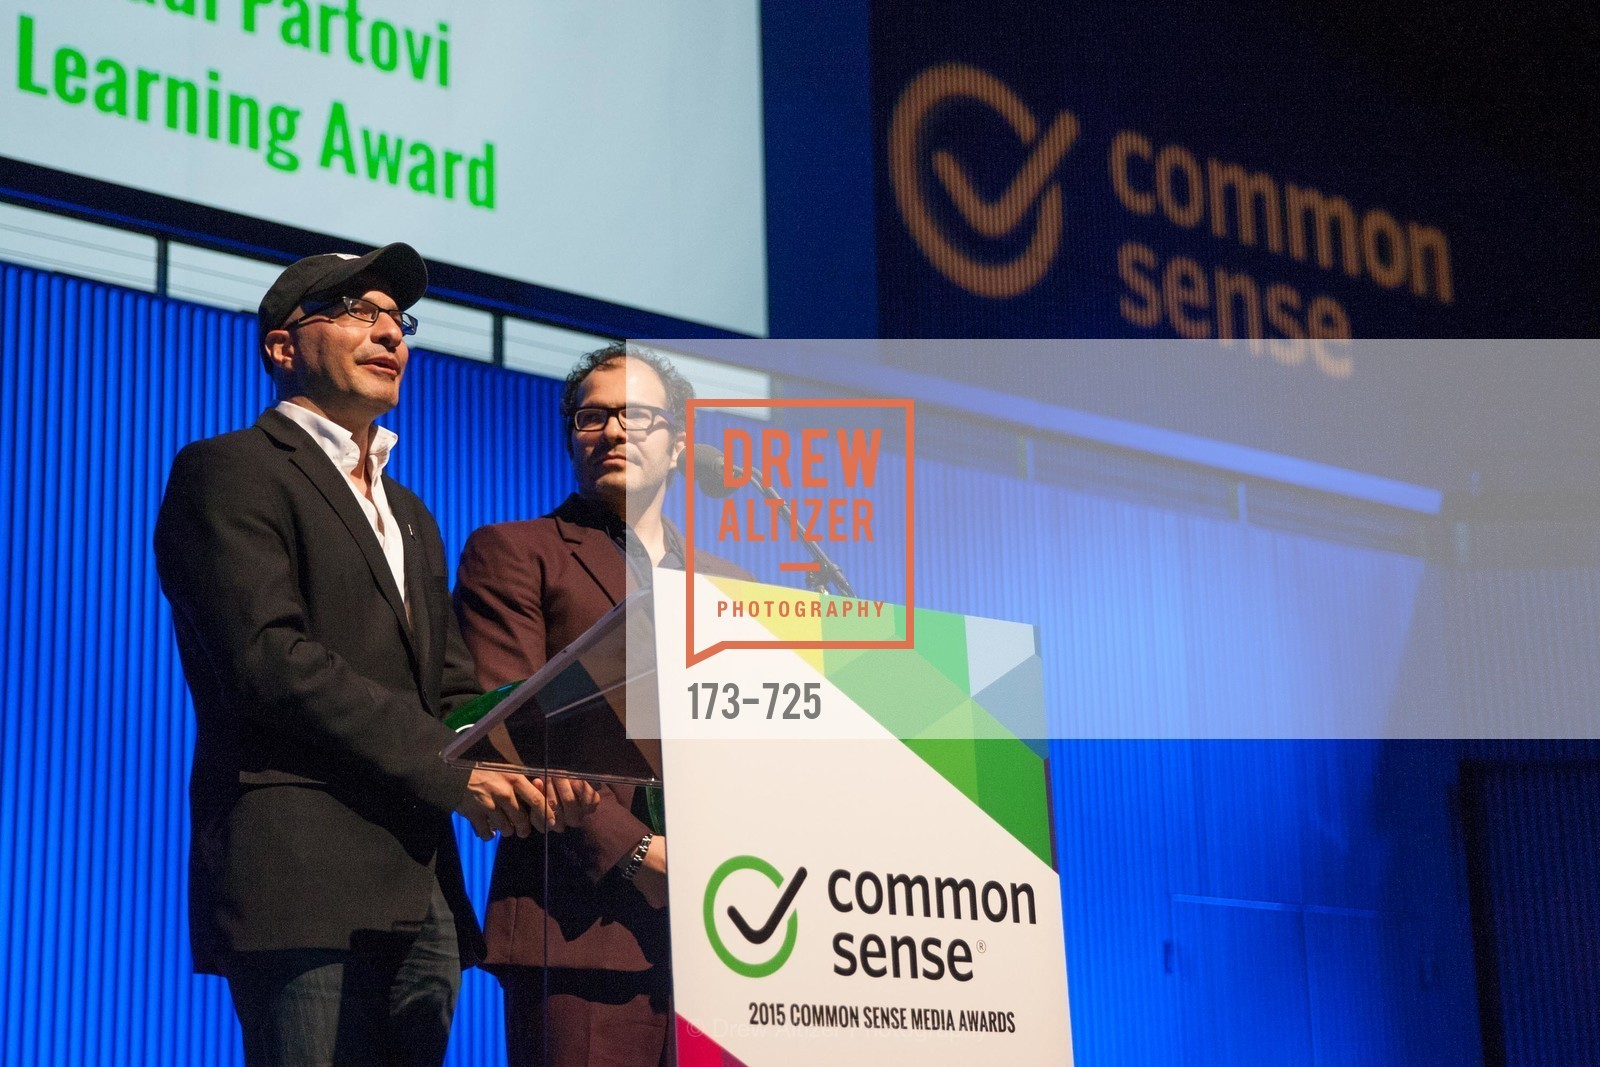 Hadi Partovi, Ali Partovi, COMMON SENSE Media Awards 2015, US, May 14th, 2015